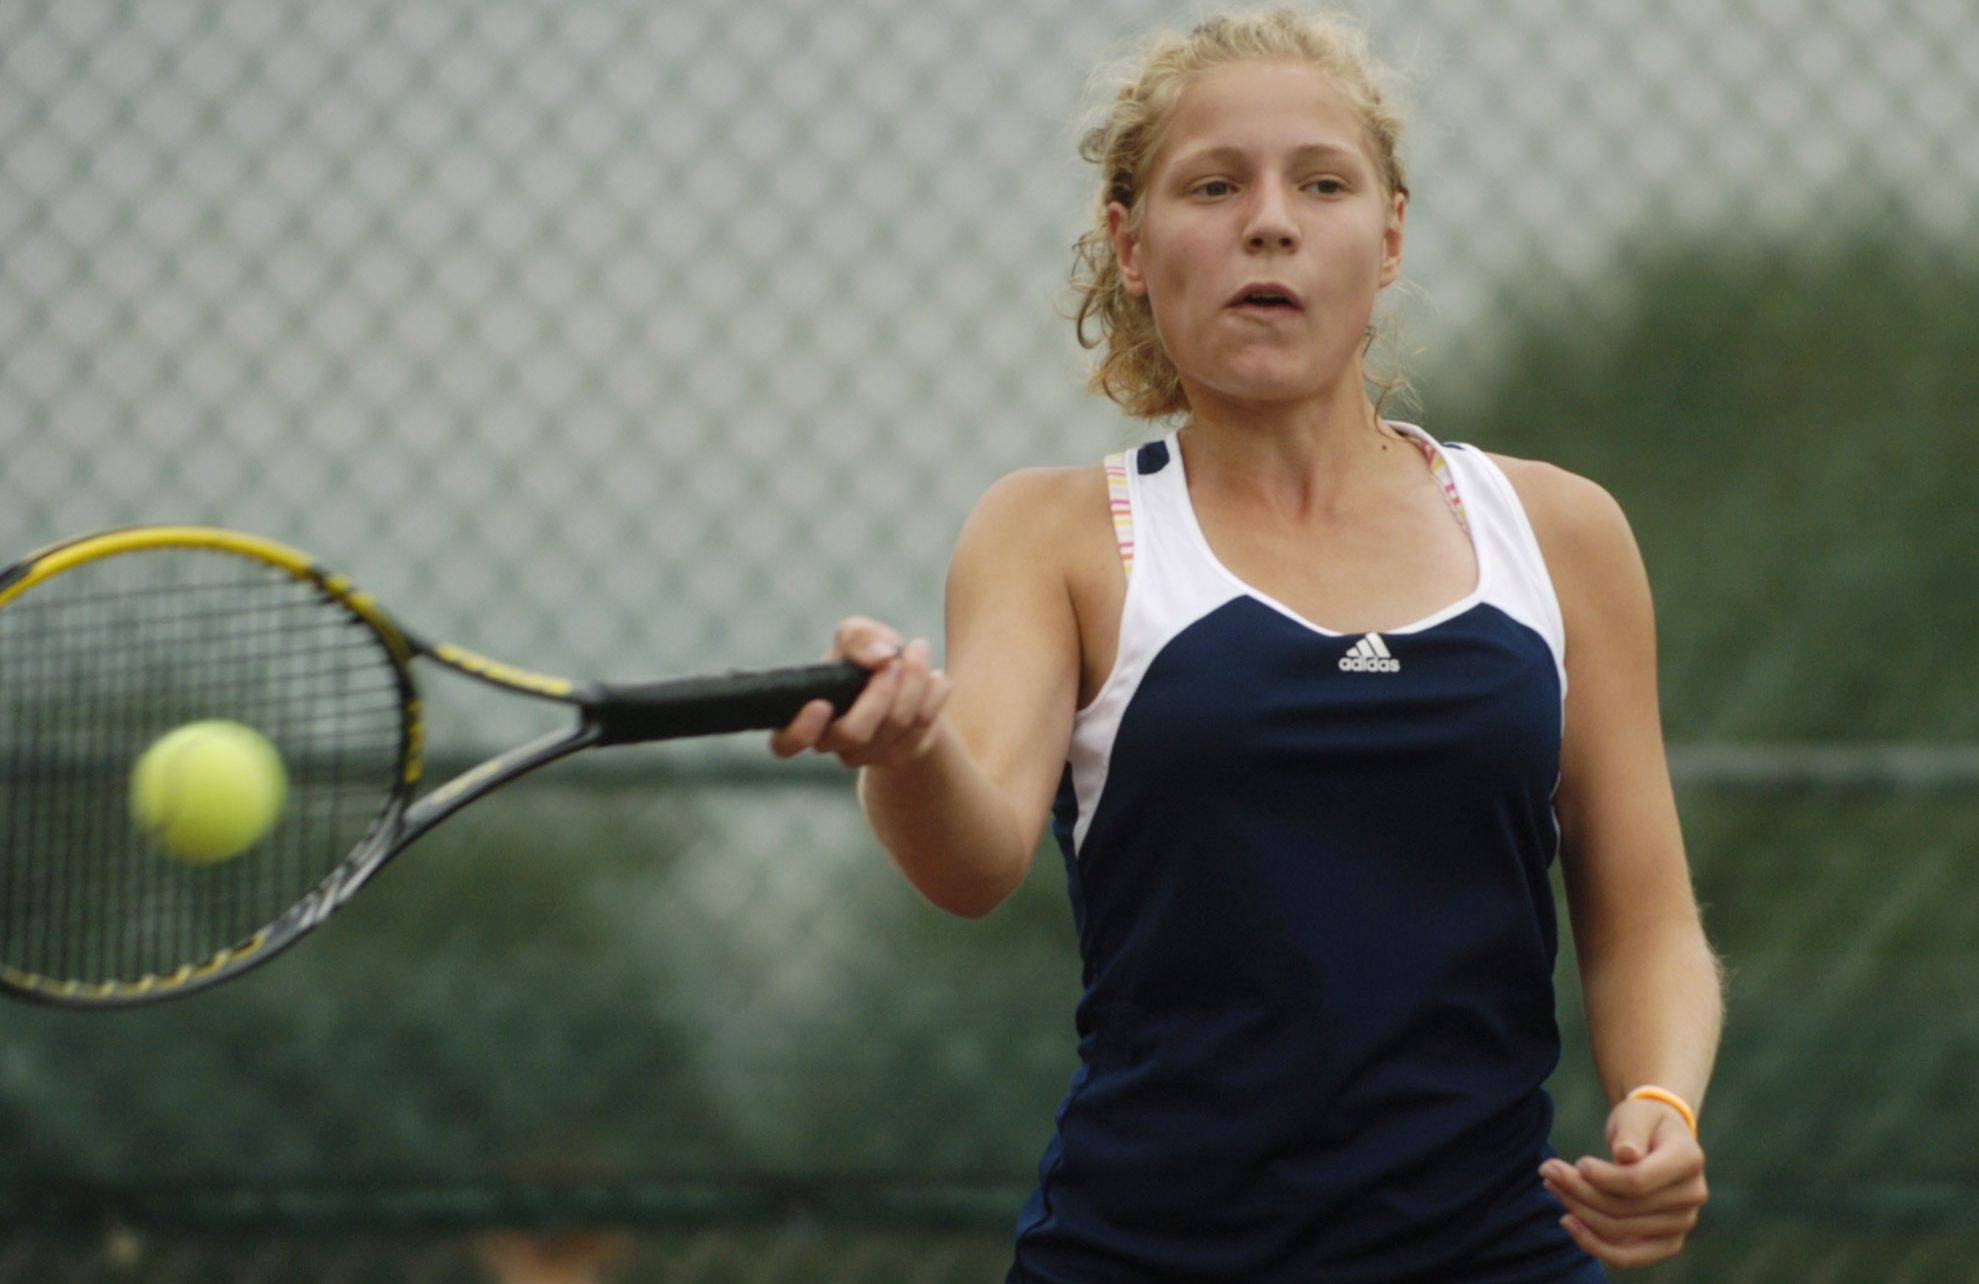 Buffalo Grove looks to defend its Mid-Suburban East title with No. 1 singles player Elise Mousseau.